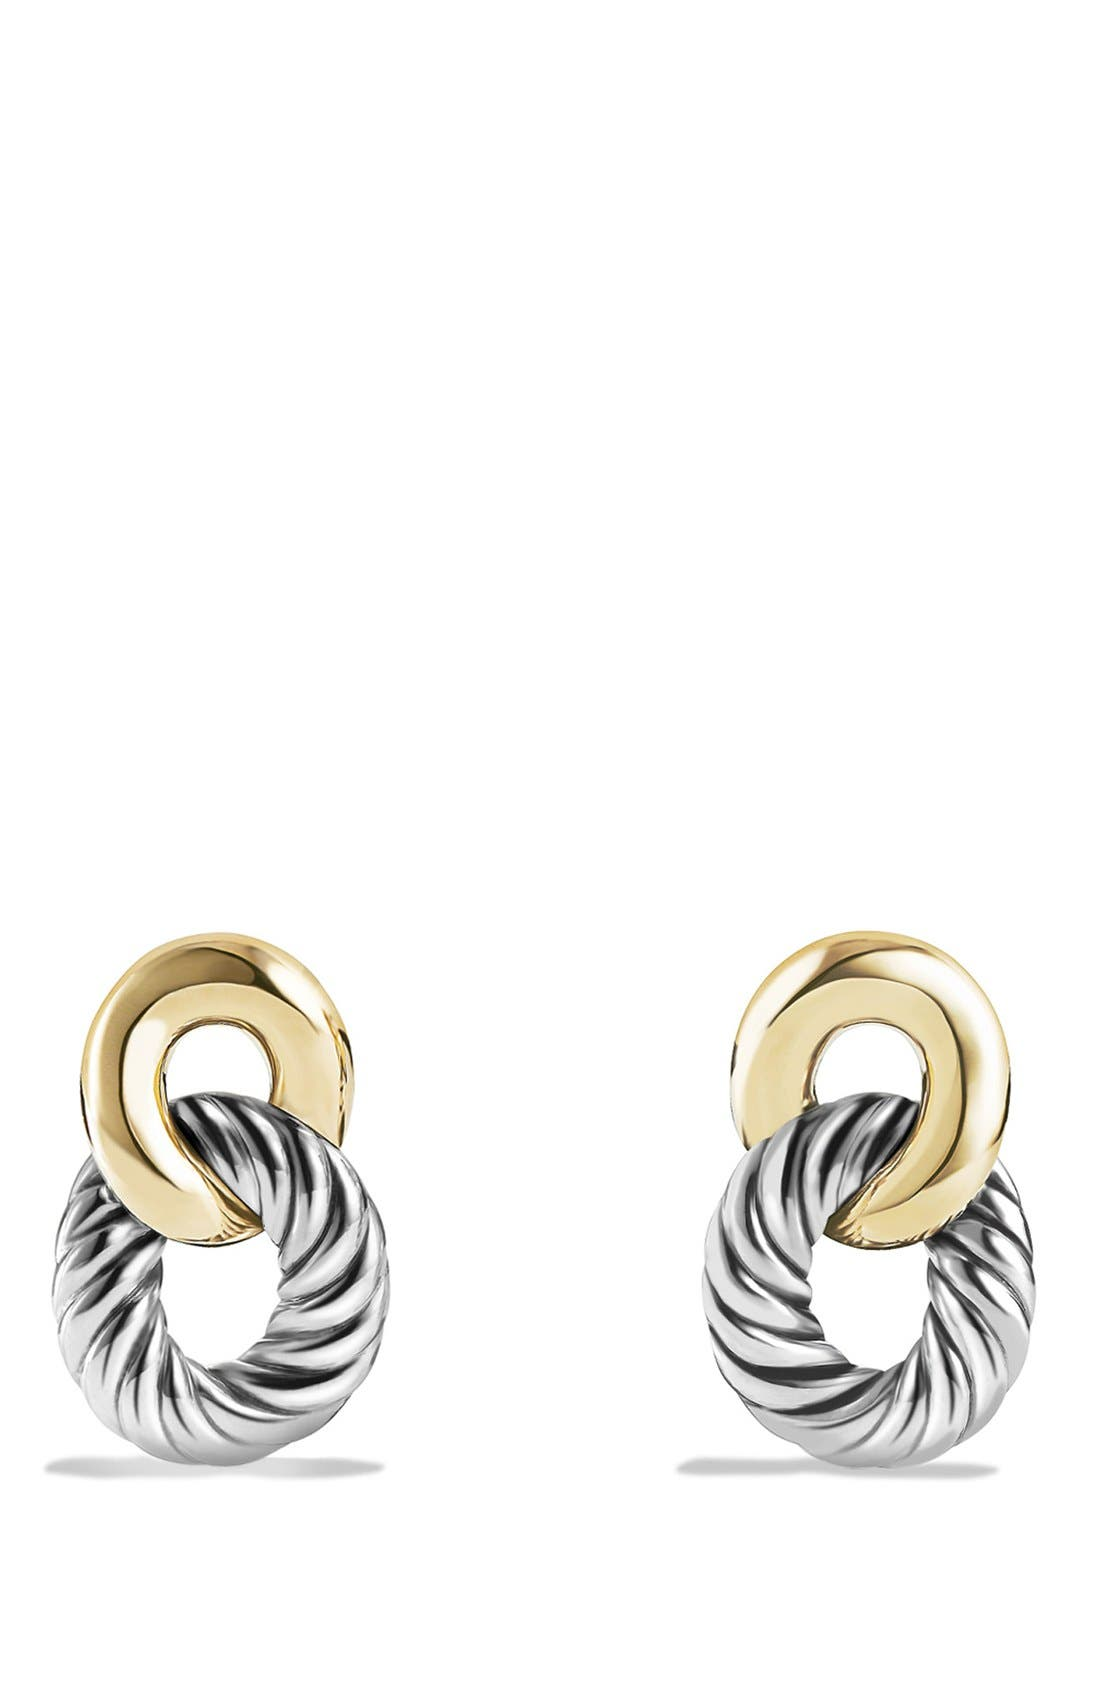 'Belmont' Curb Link Drop Earrings with 18K Gold,                         Main,                         color, Two Tone